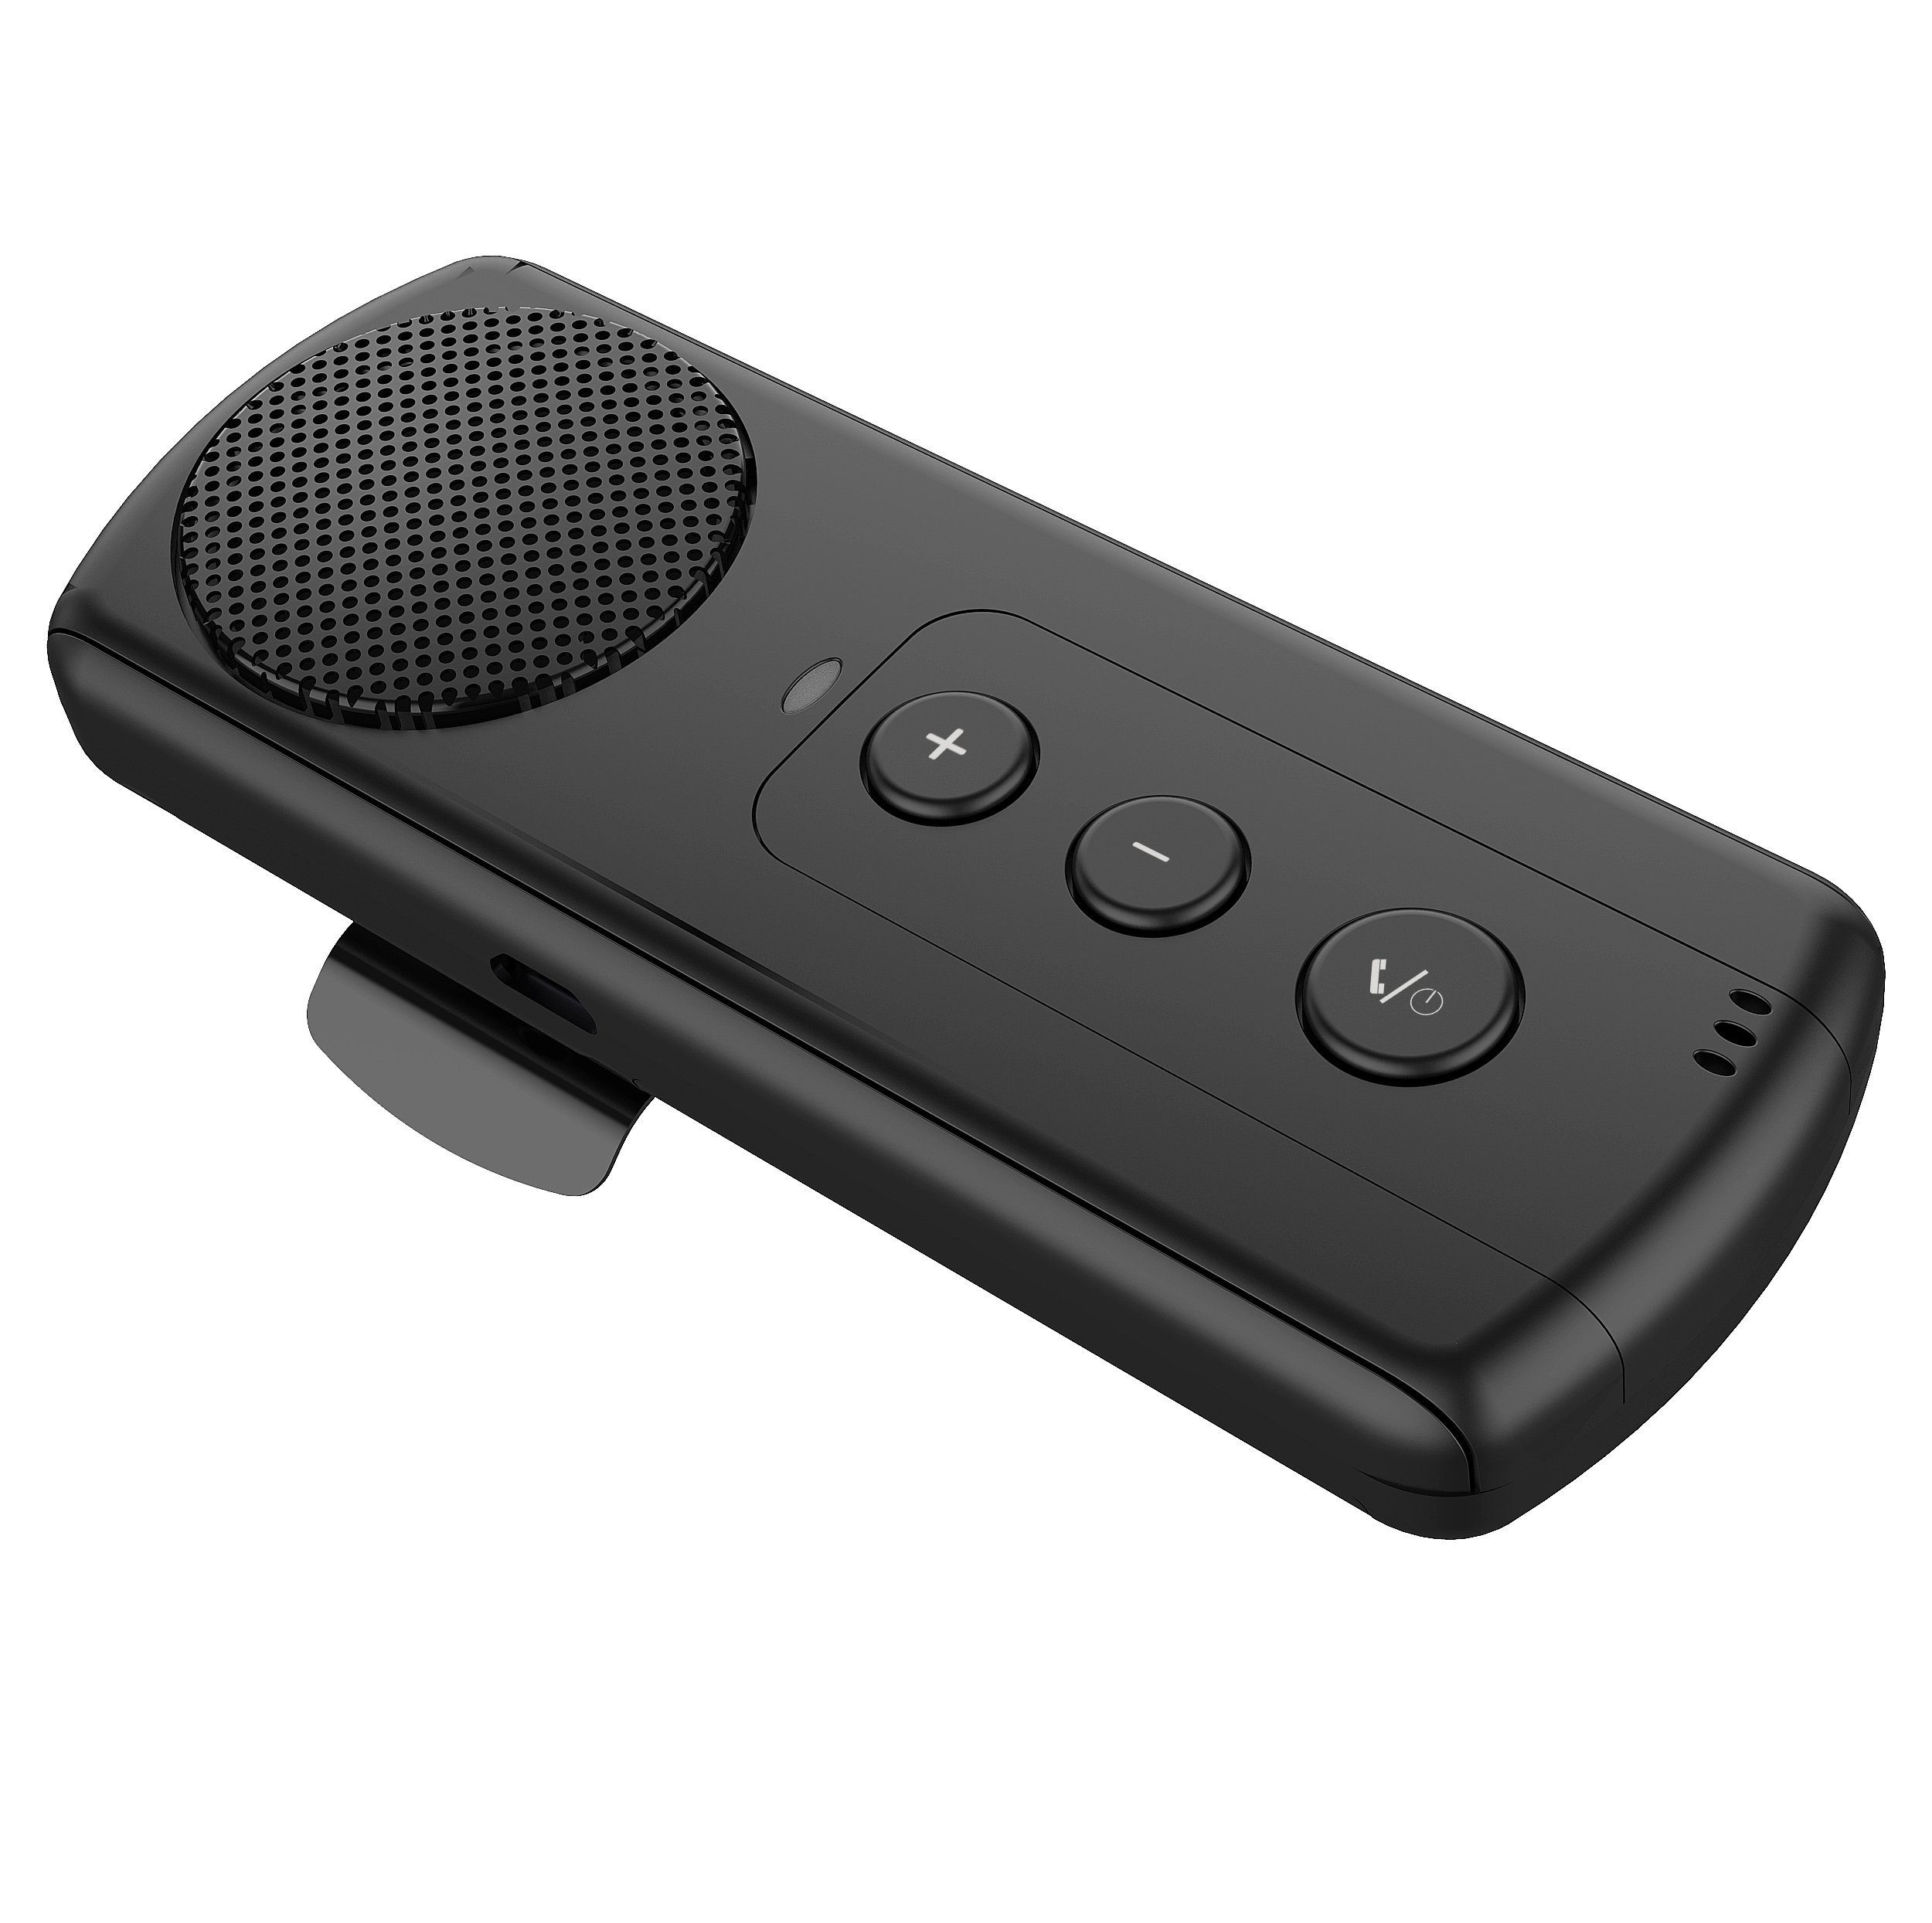 Bluetooth Hands Free Car Speakerphone, SUNITEC Bluetooth Visor Car Kit In-Car Phone Speaker Support GPS, Music and HandsFree Calling for iphone, Samsung and Smartphones[2 Year Warranty]